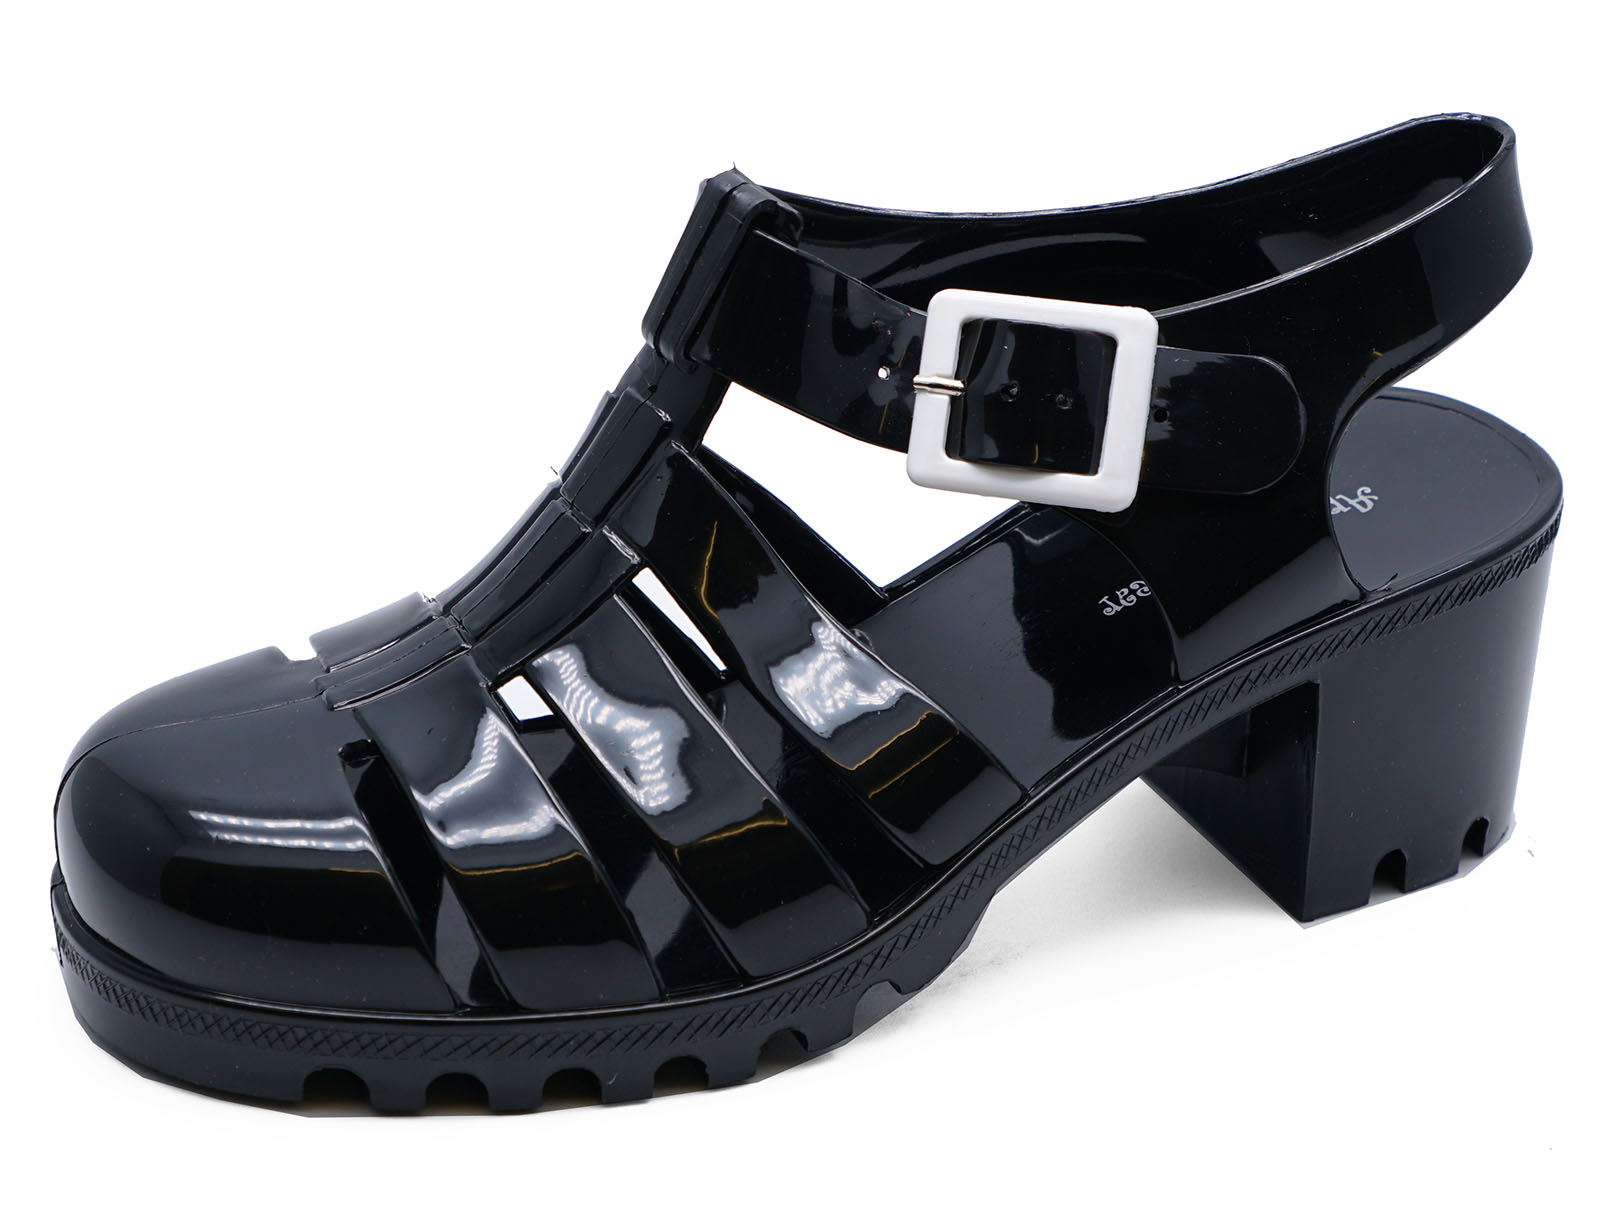 e4ca58fa3e21b Details about LADIES BLACK JELLY GLADIATOR RETRO SANDALS FESTIVAL BEACH  HOLIDAY SHOES UK 3-8